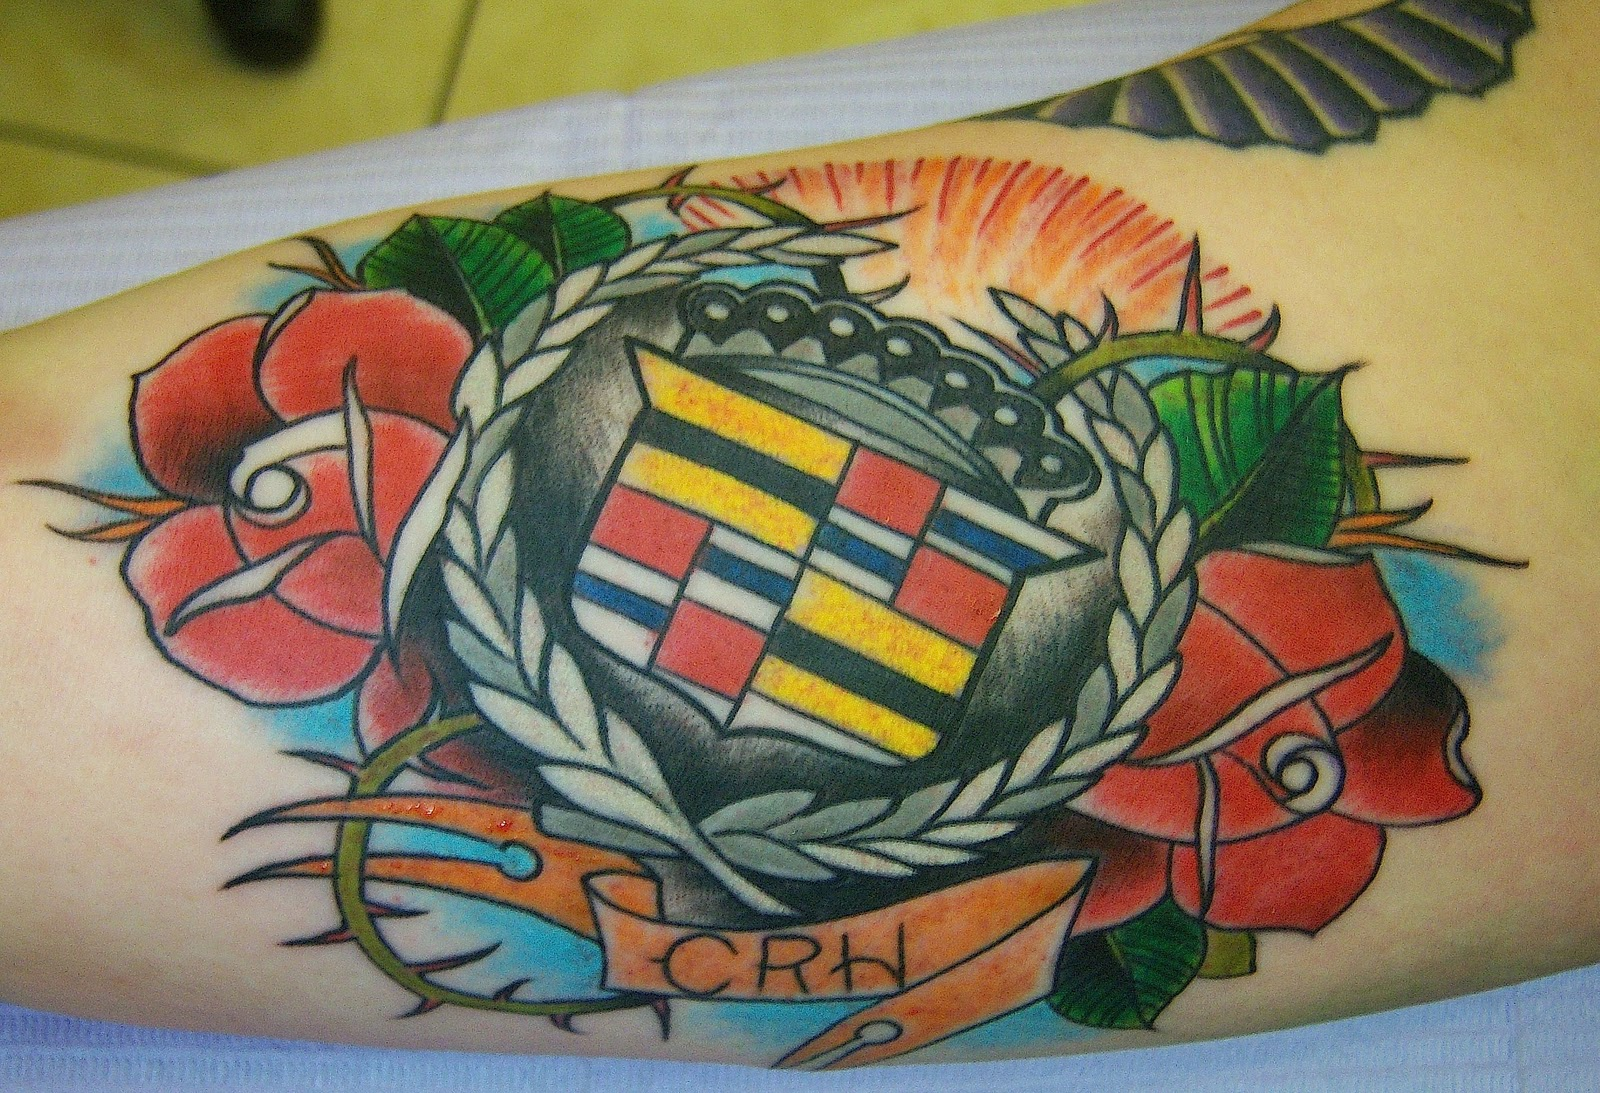 Cadillac Emblem Tattoo By Joey Vegas Downtown Tattoo